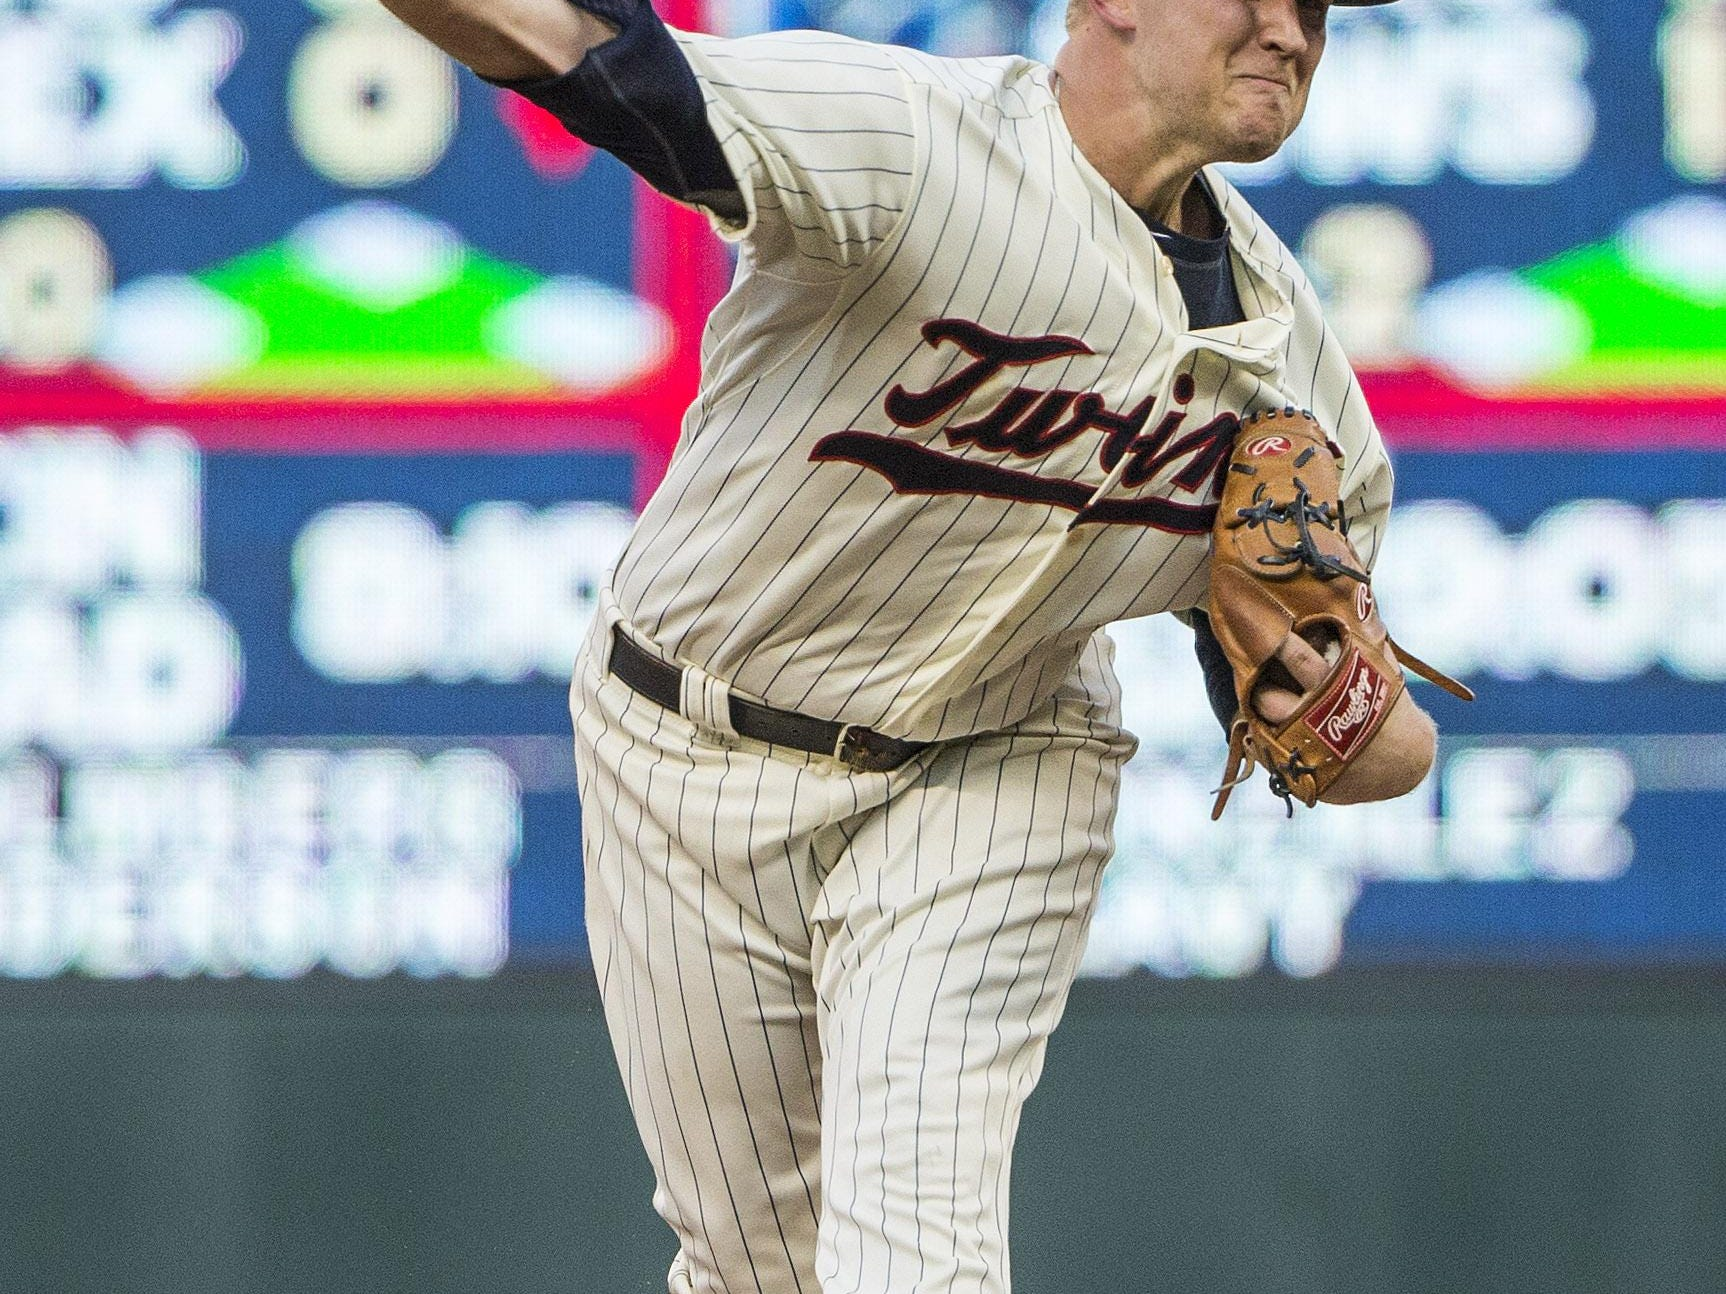 Minnesota starting pitcher Tyler Duffey gave up one hit in six innings against Cleveland on Saturday night at Target Field.